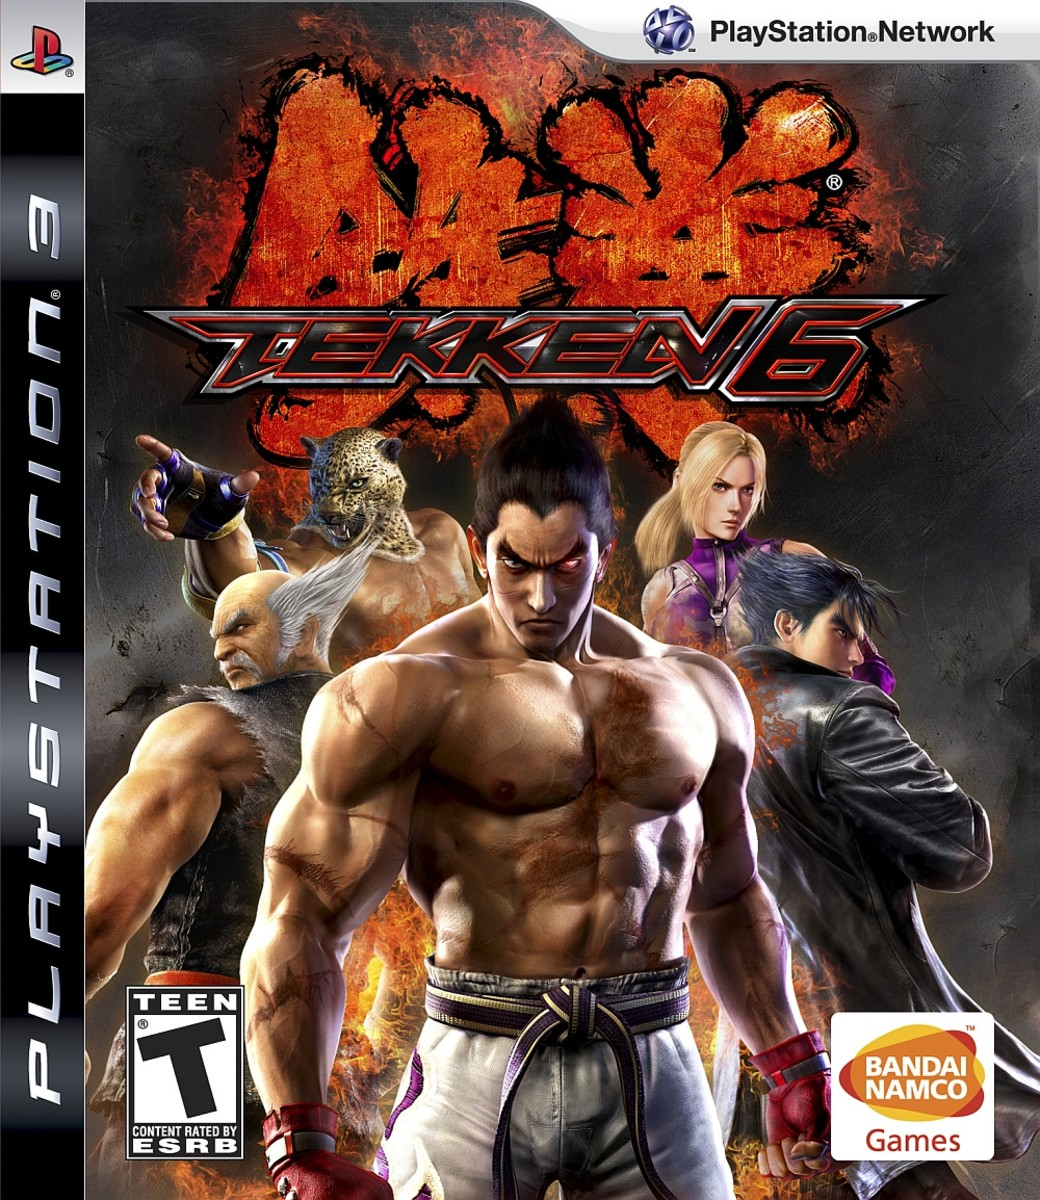 Tekken 6: Review